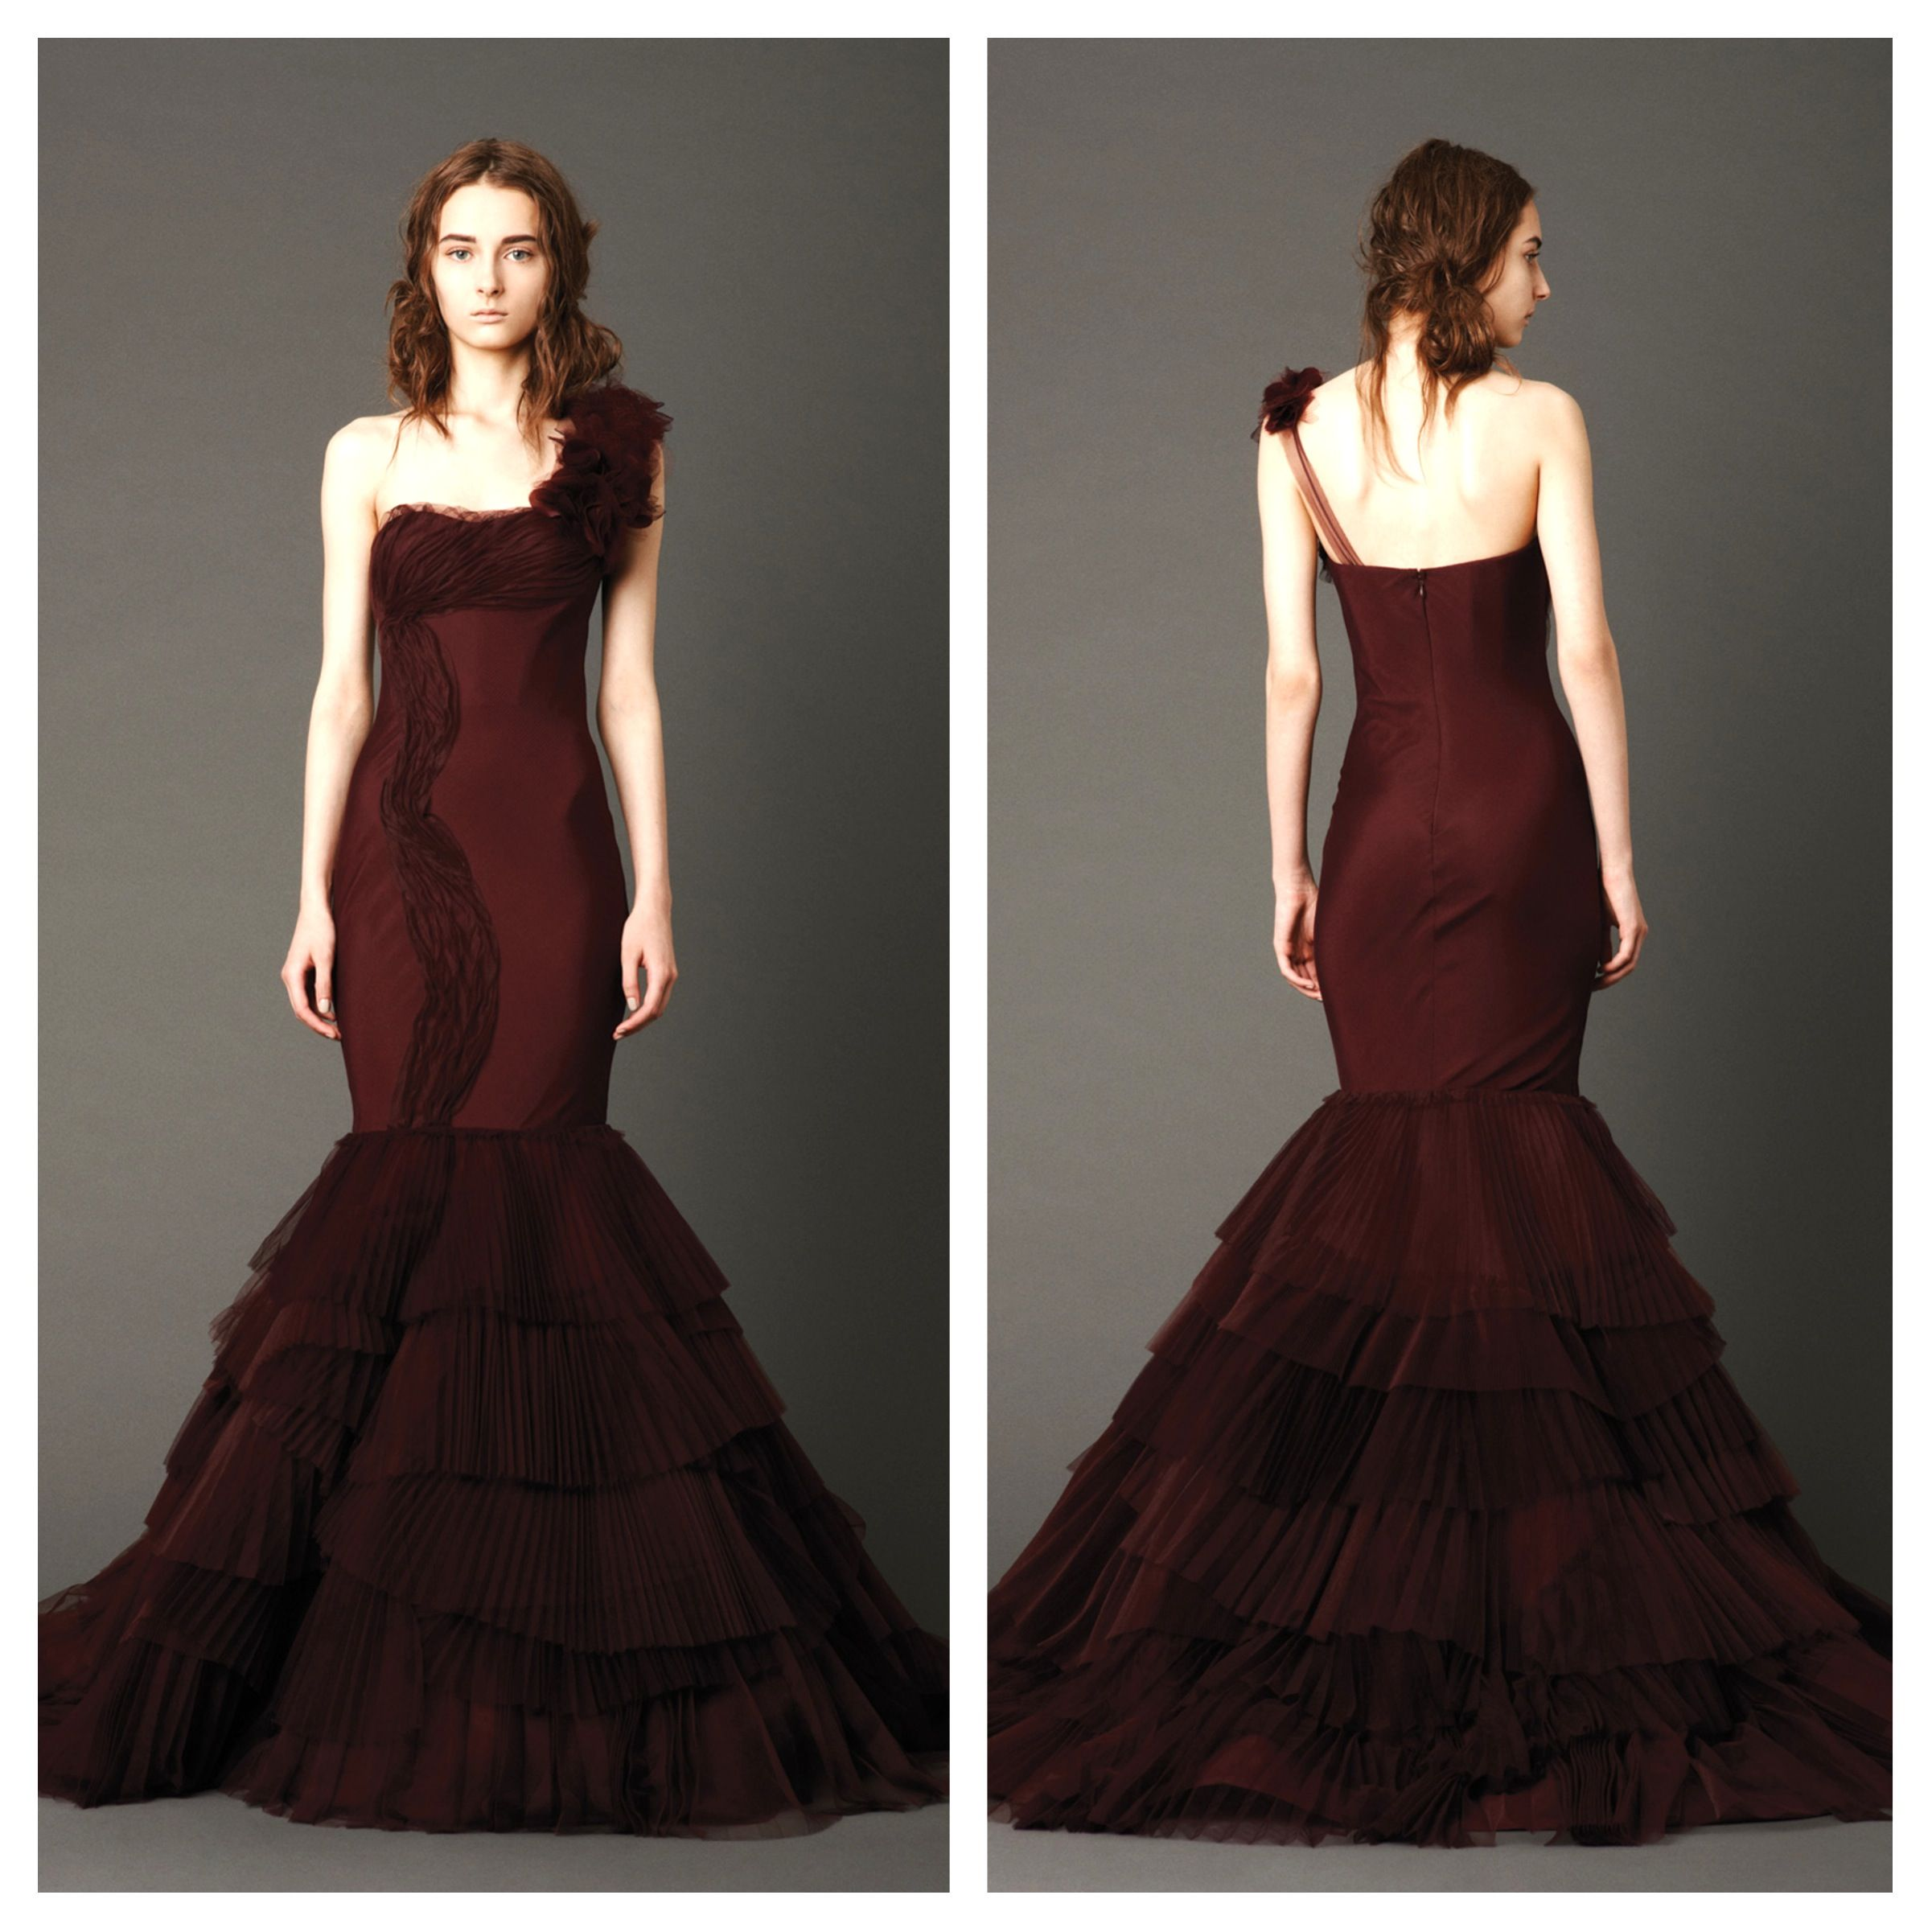 Explore Vera Wang Wedding Gowns Party Colors And More